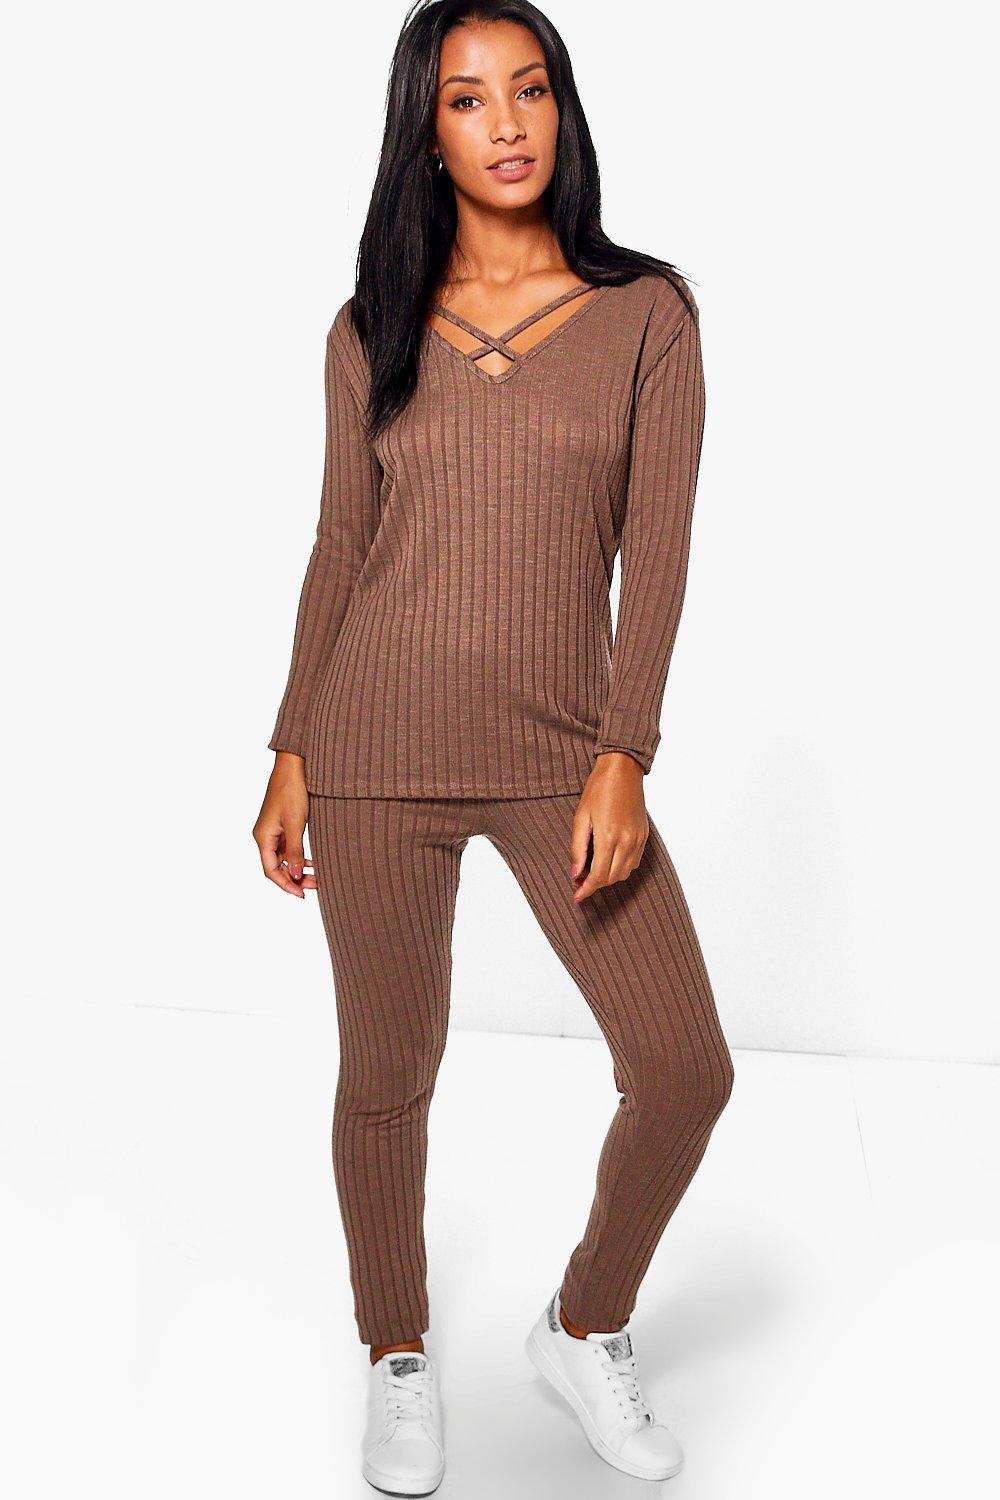 Sadie Strappy Jumper & Leggings Loungewear Set